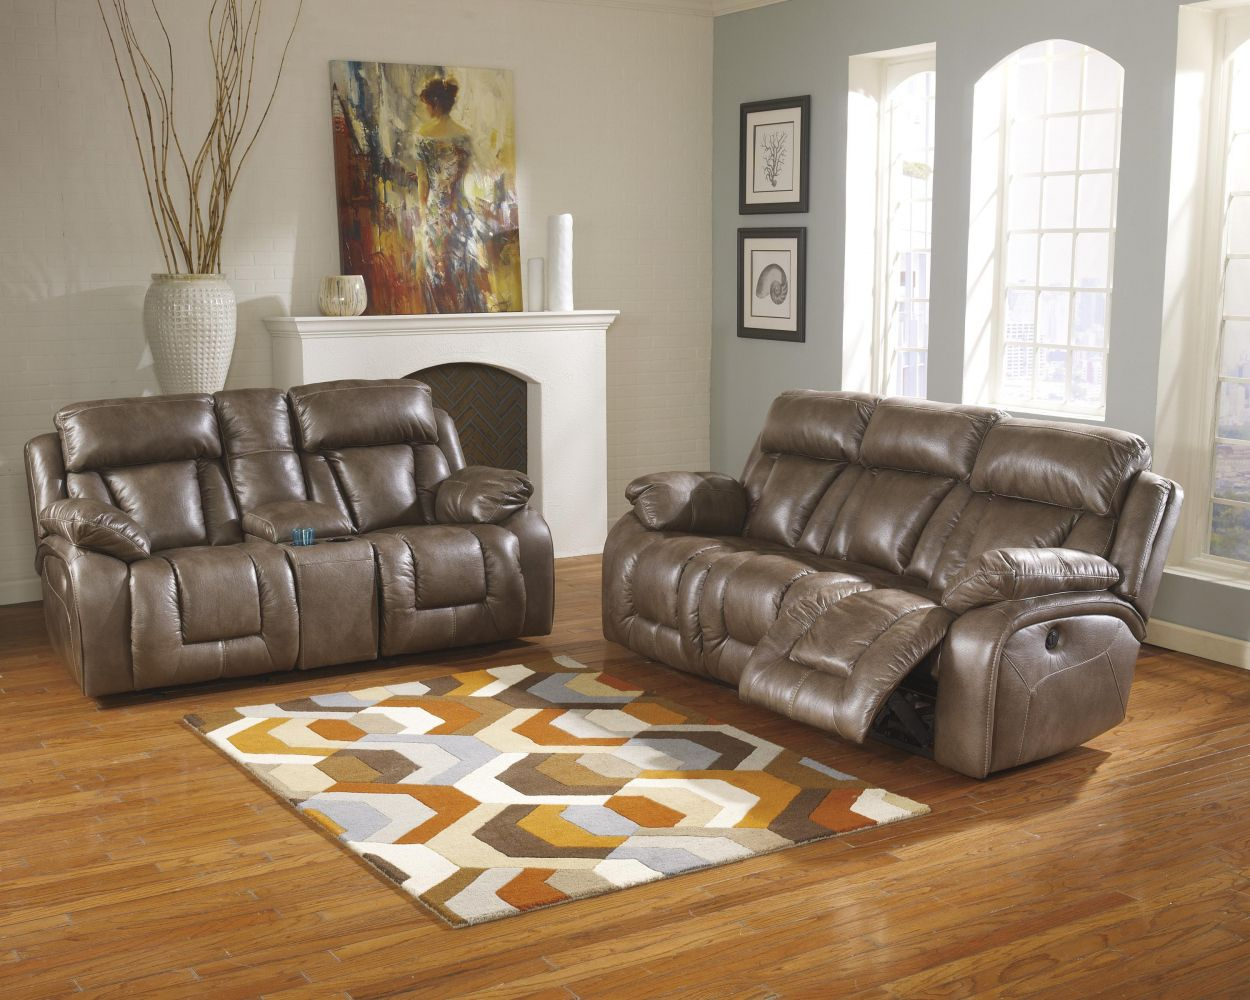 Ashley furniture myrtle beach sc best cheap modern furniture check more at http